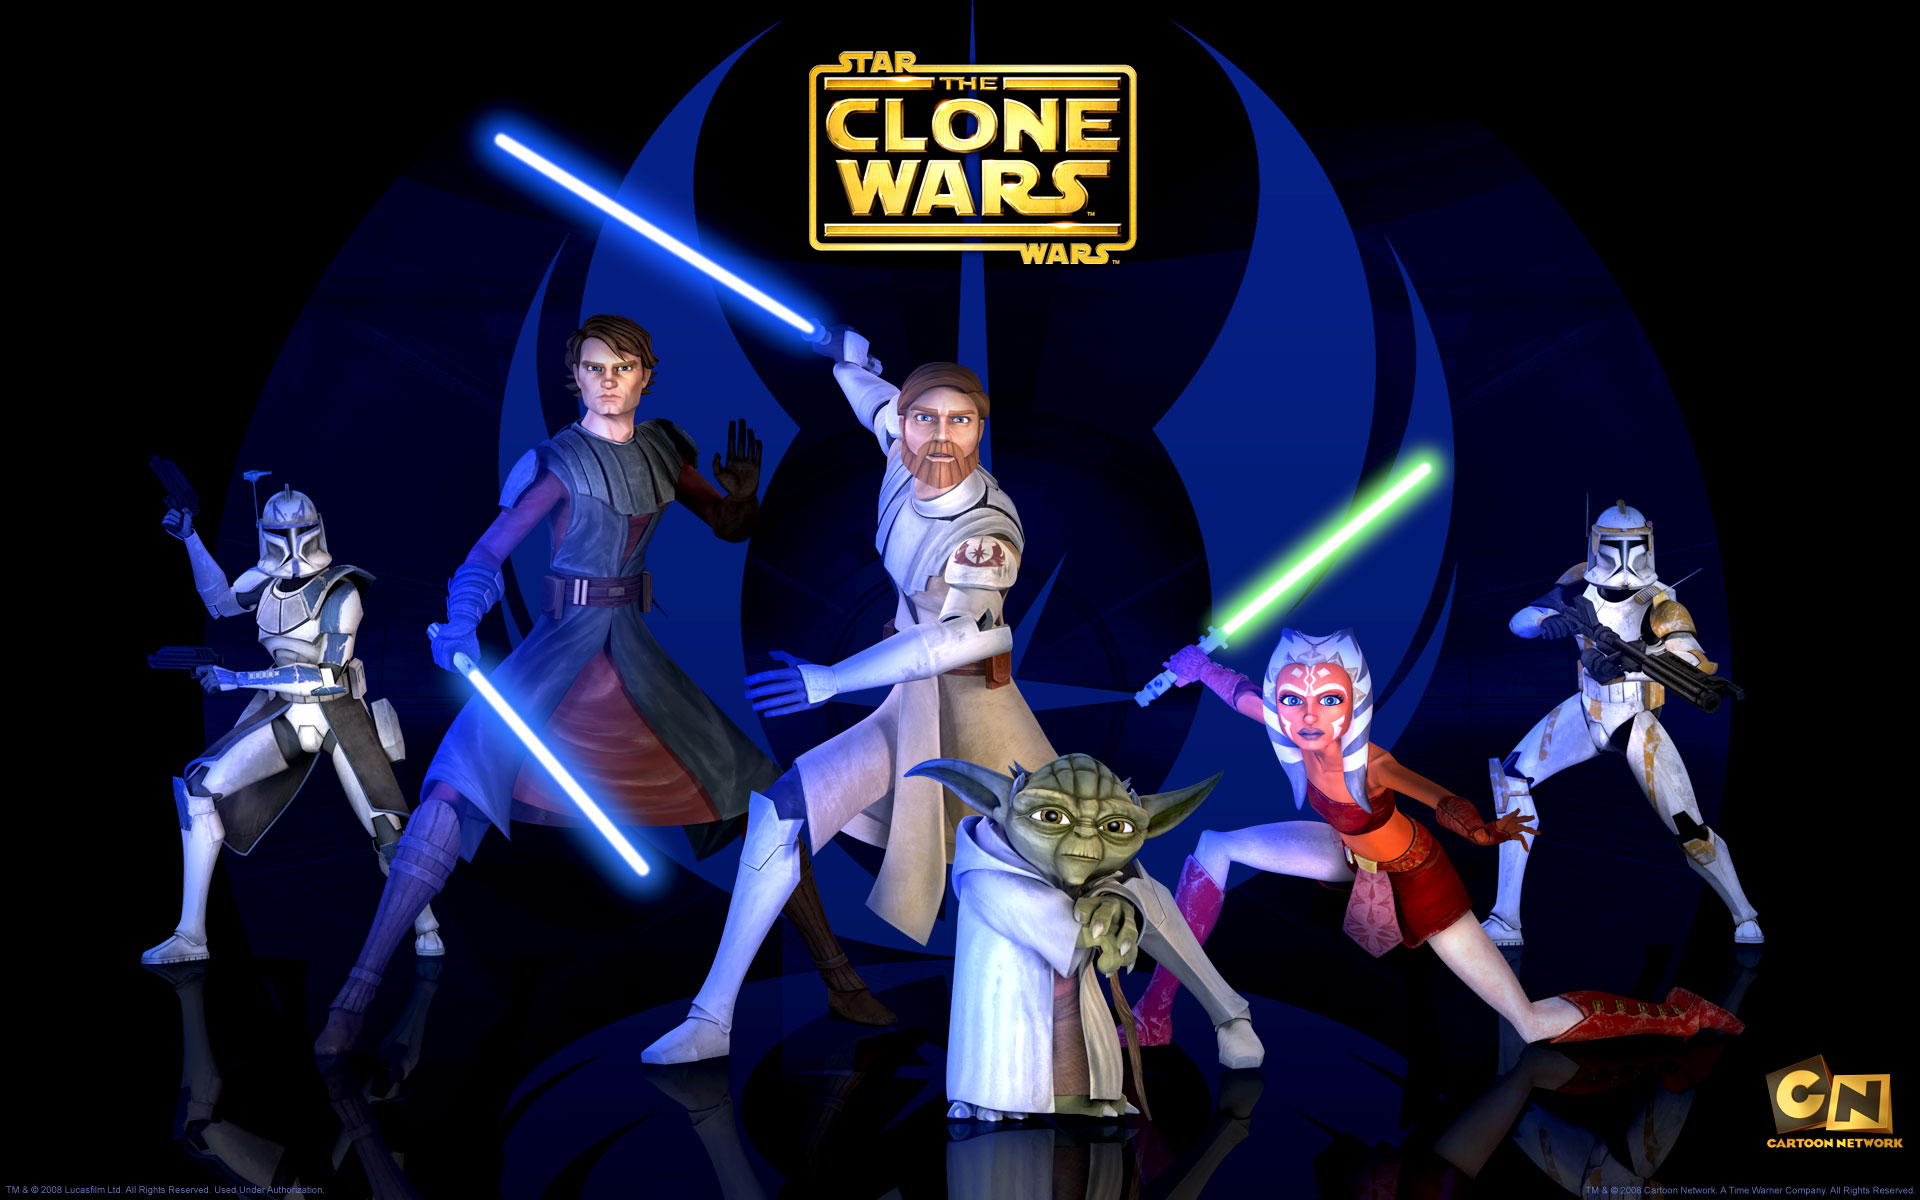 netpictures20100822star wars the clone wars jedi wallpaperjpg 1920x1200